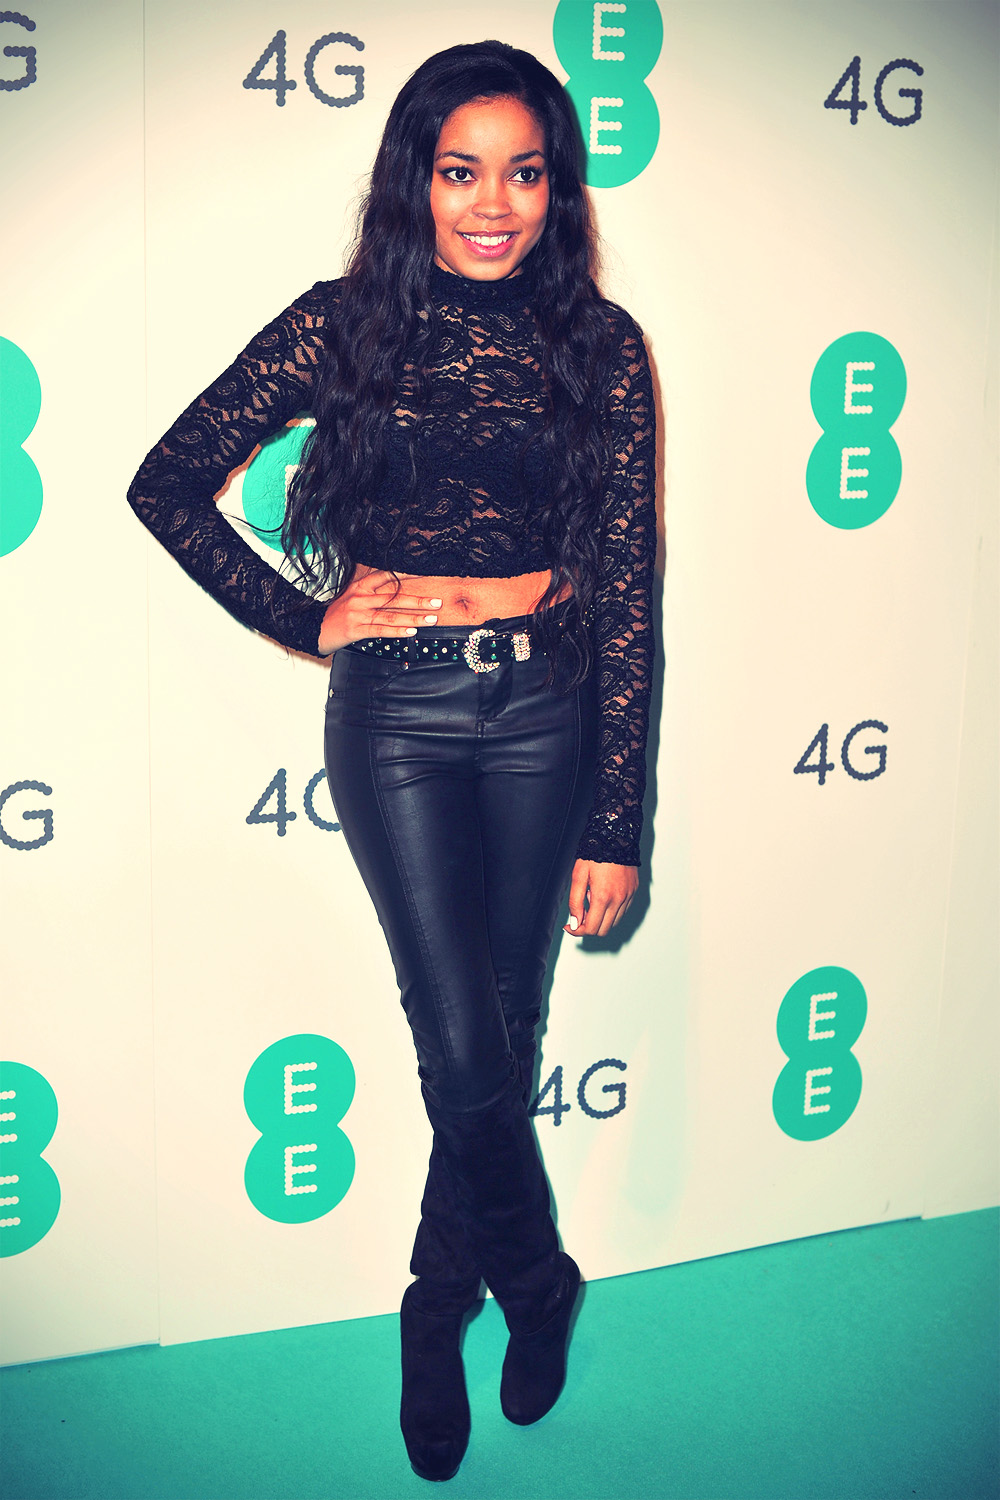 Dionne Bromfield attends the launch of EE